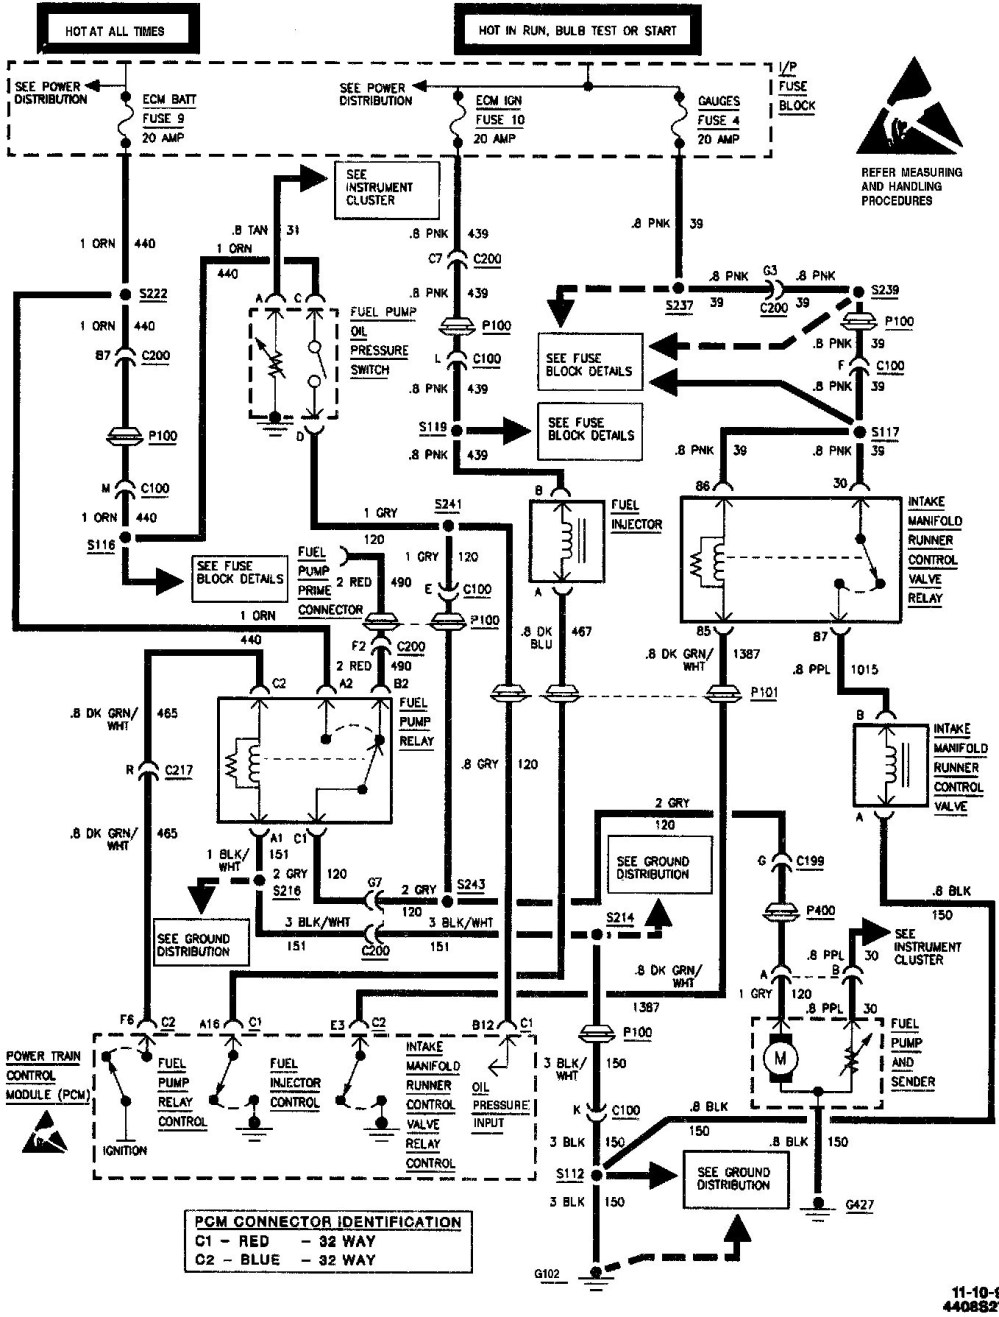 medium resolution of mack truck fuel pump wiring diagrams wiring diagram todays rh 4 3 9 1813weddingbarn com 2010 mack mp8 fuel system 2015 mack truck wire diagram